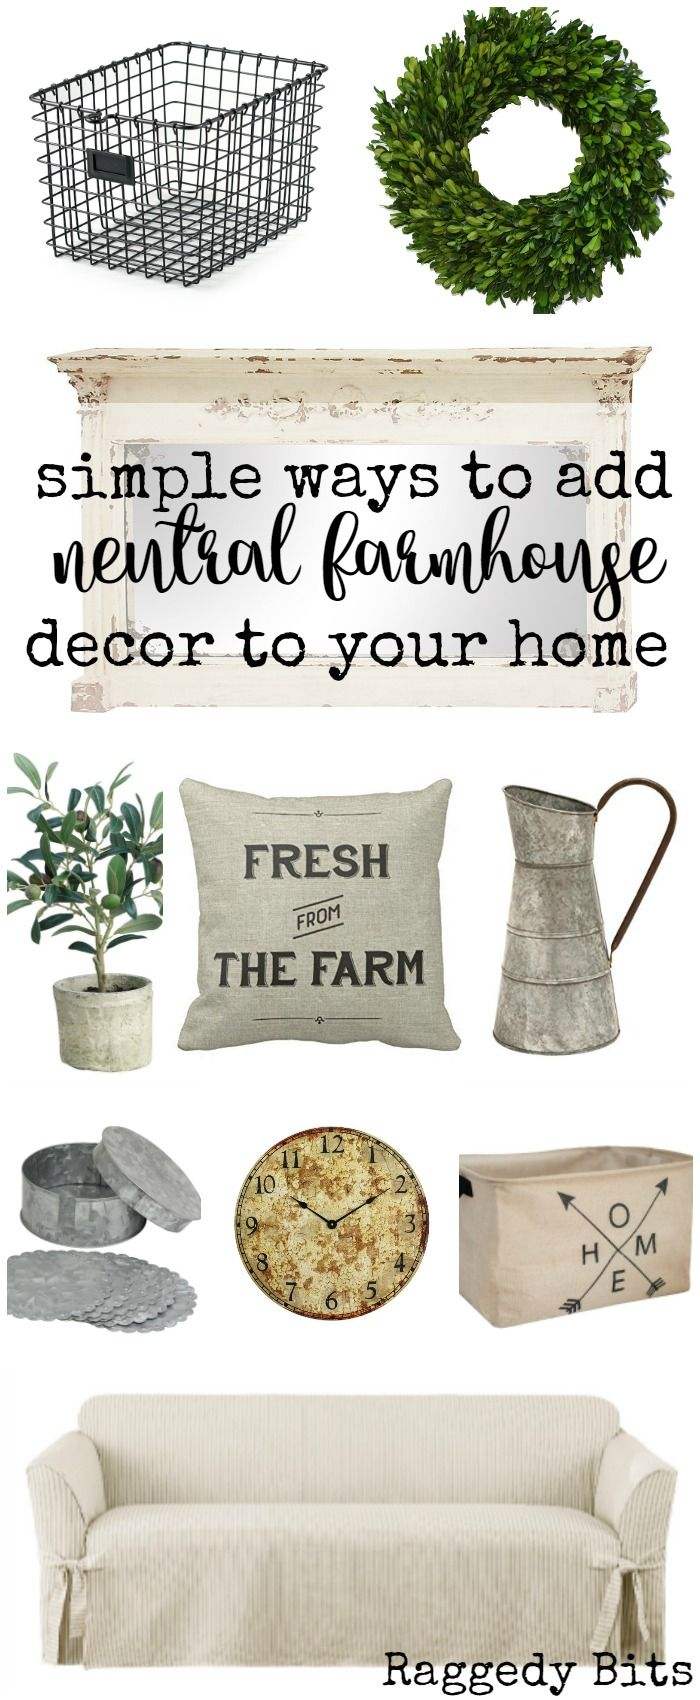 Sharing ways to easily add Neutral Farmhouse Decor to your home | www.raggedy-bits.com